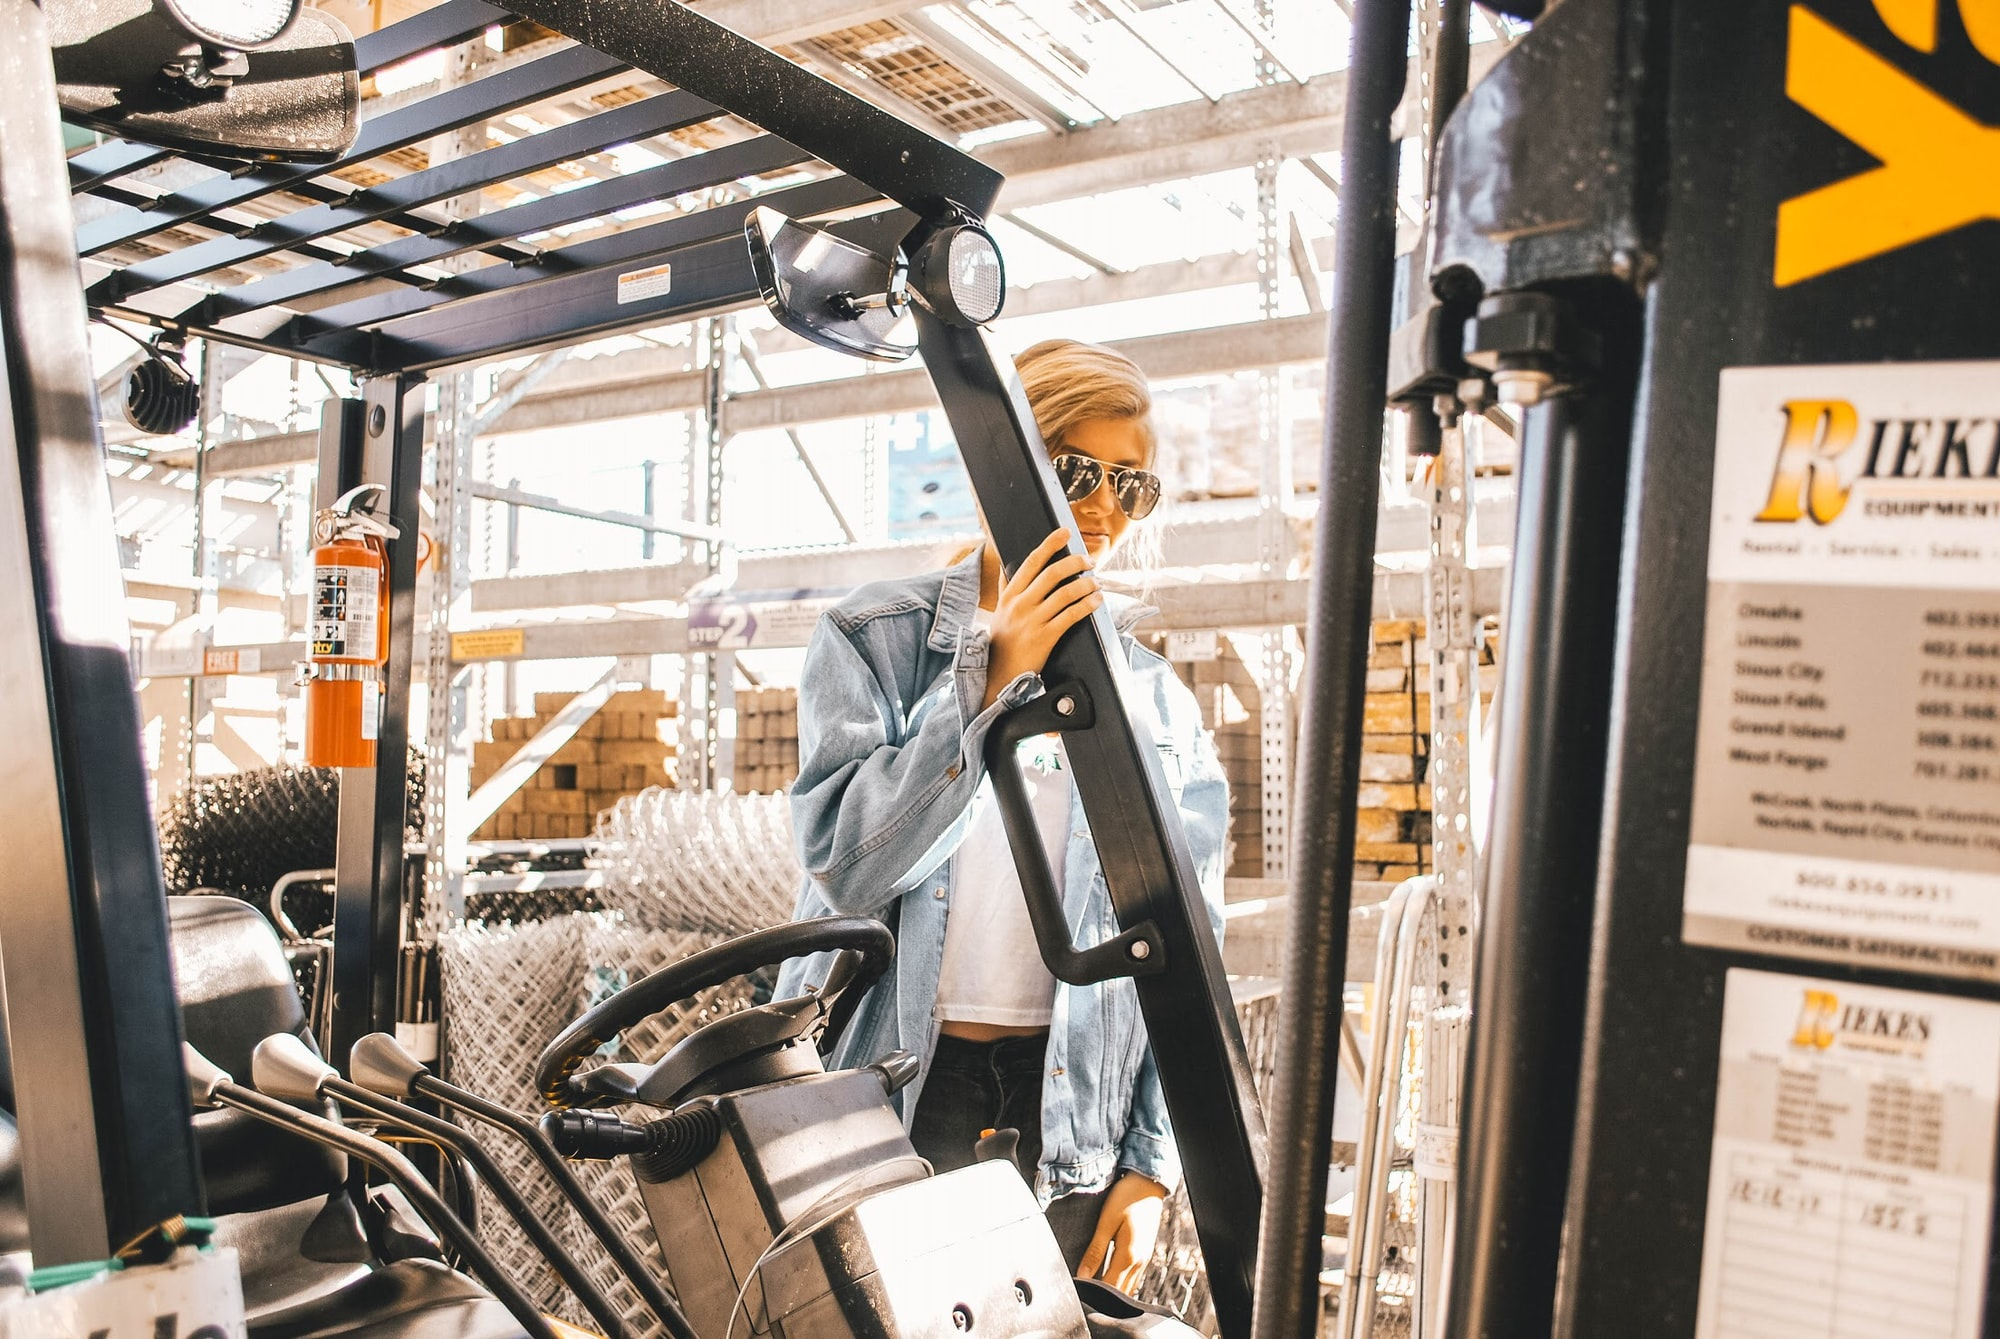 Forklift operation in a warehouse